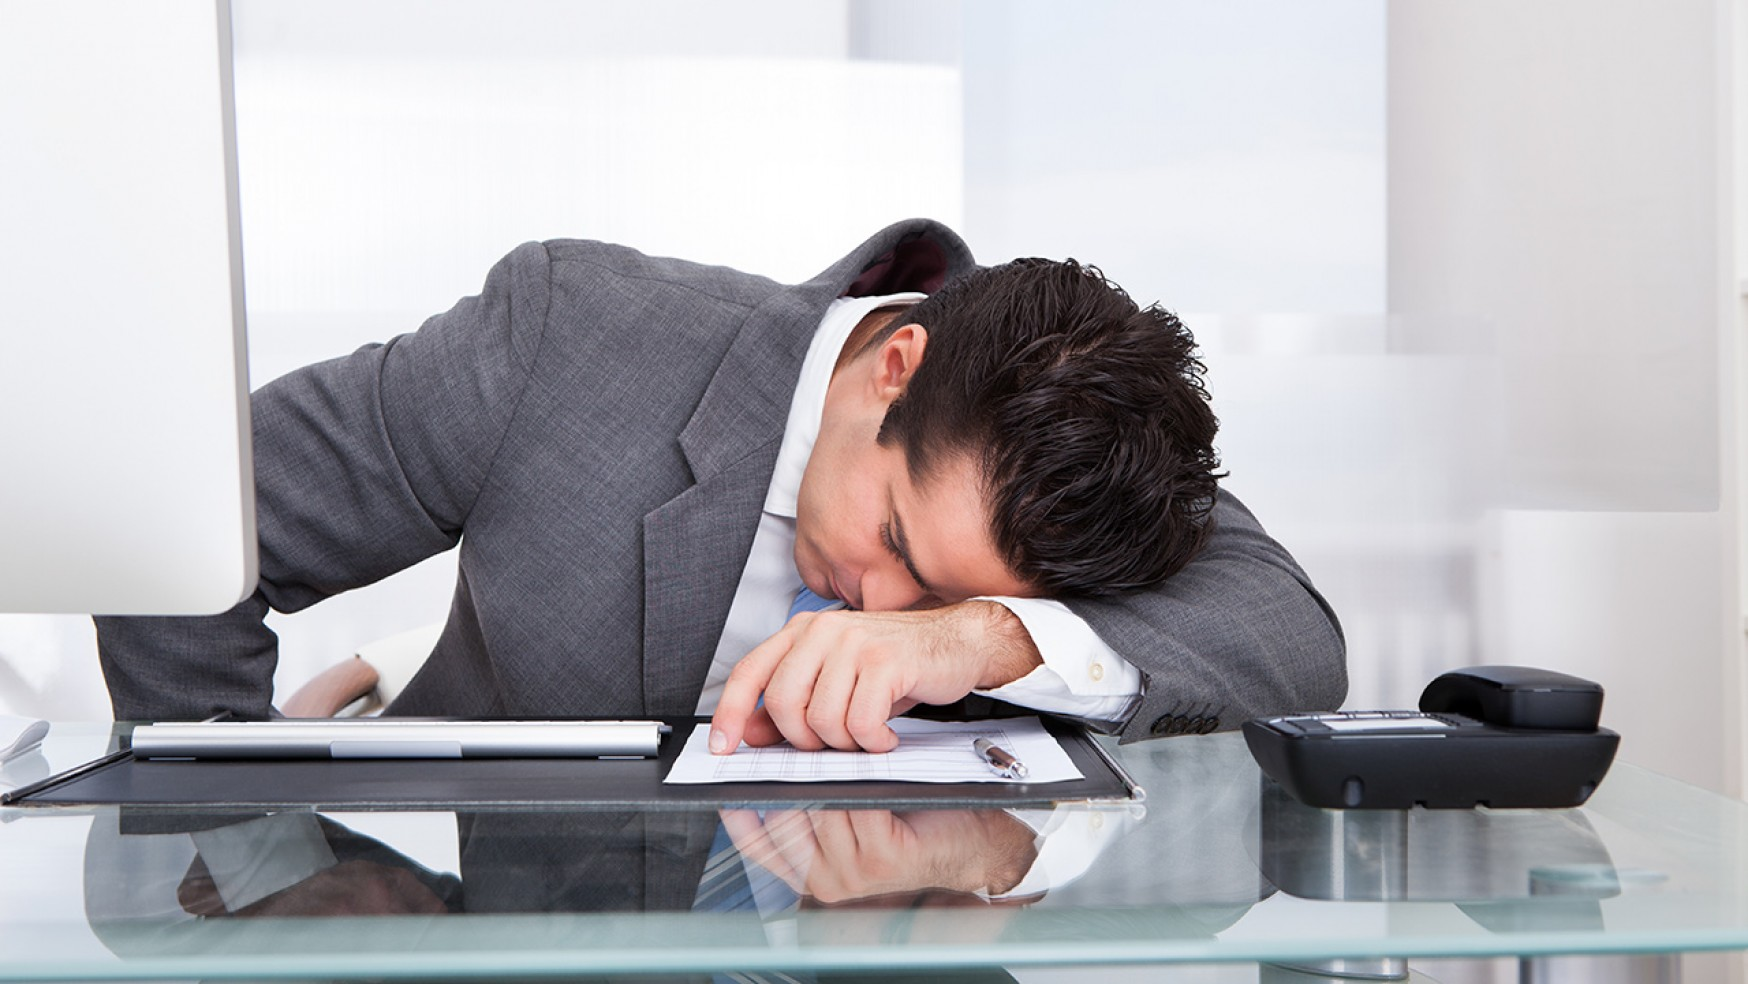 Working at night increases the risk of Diabetes